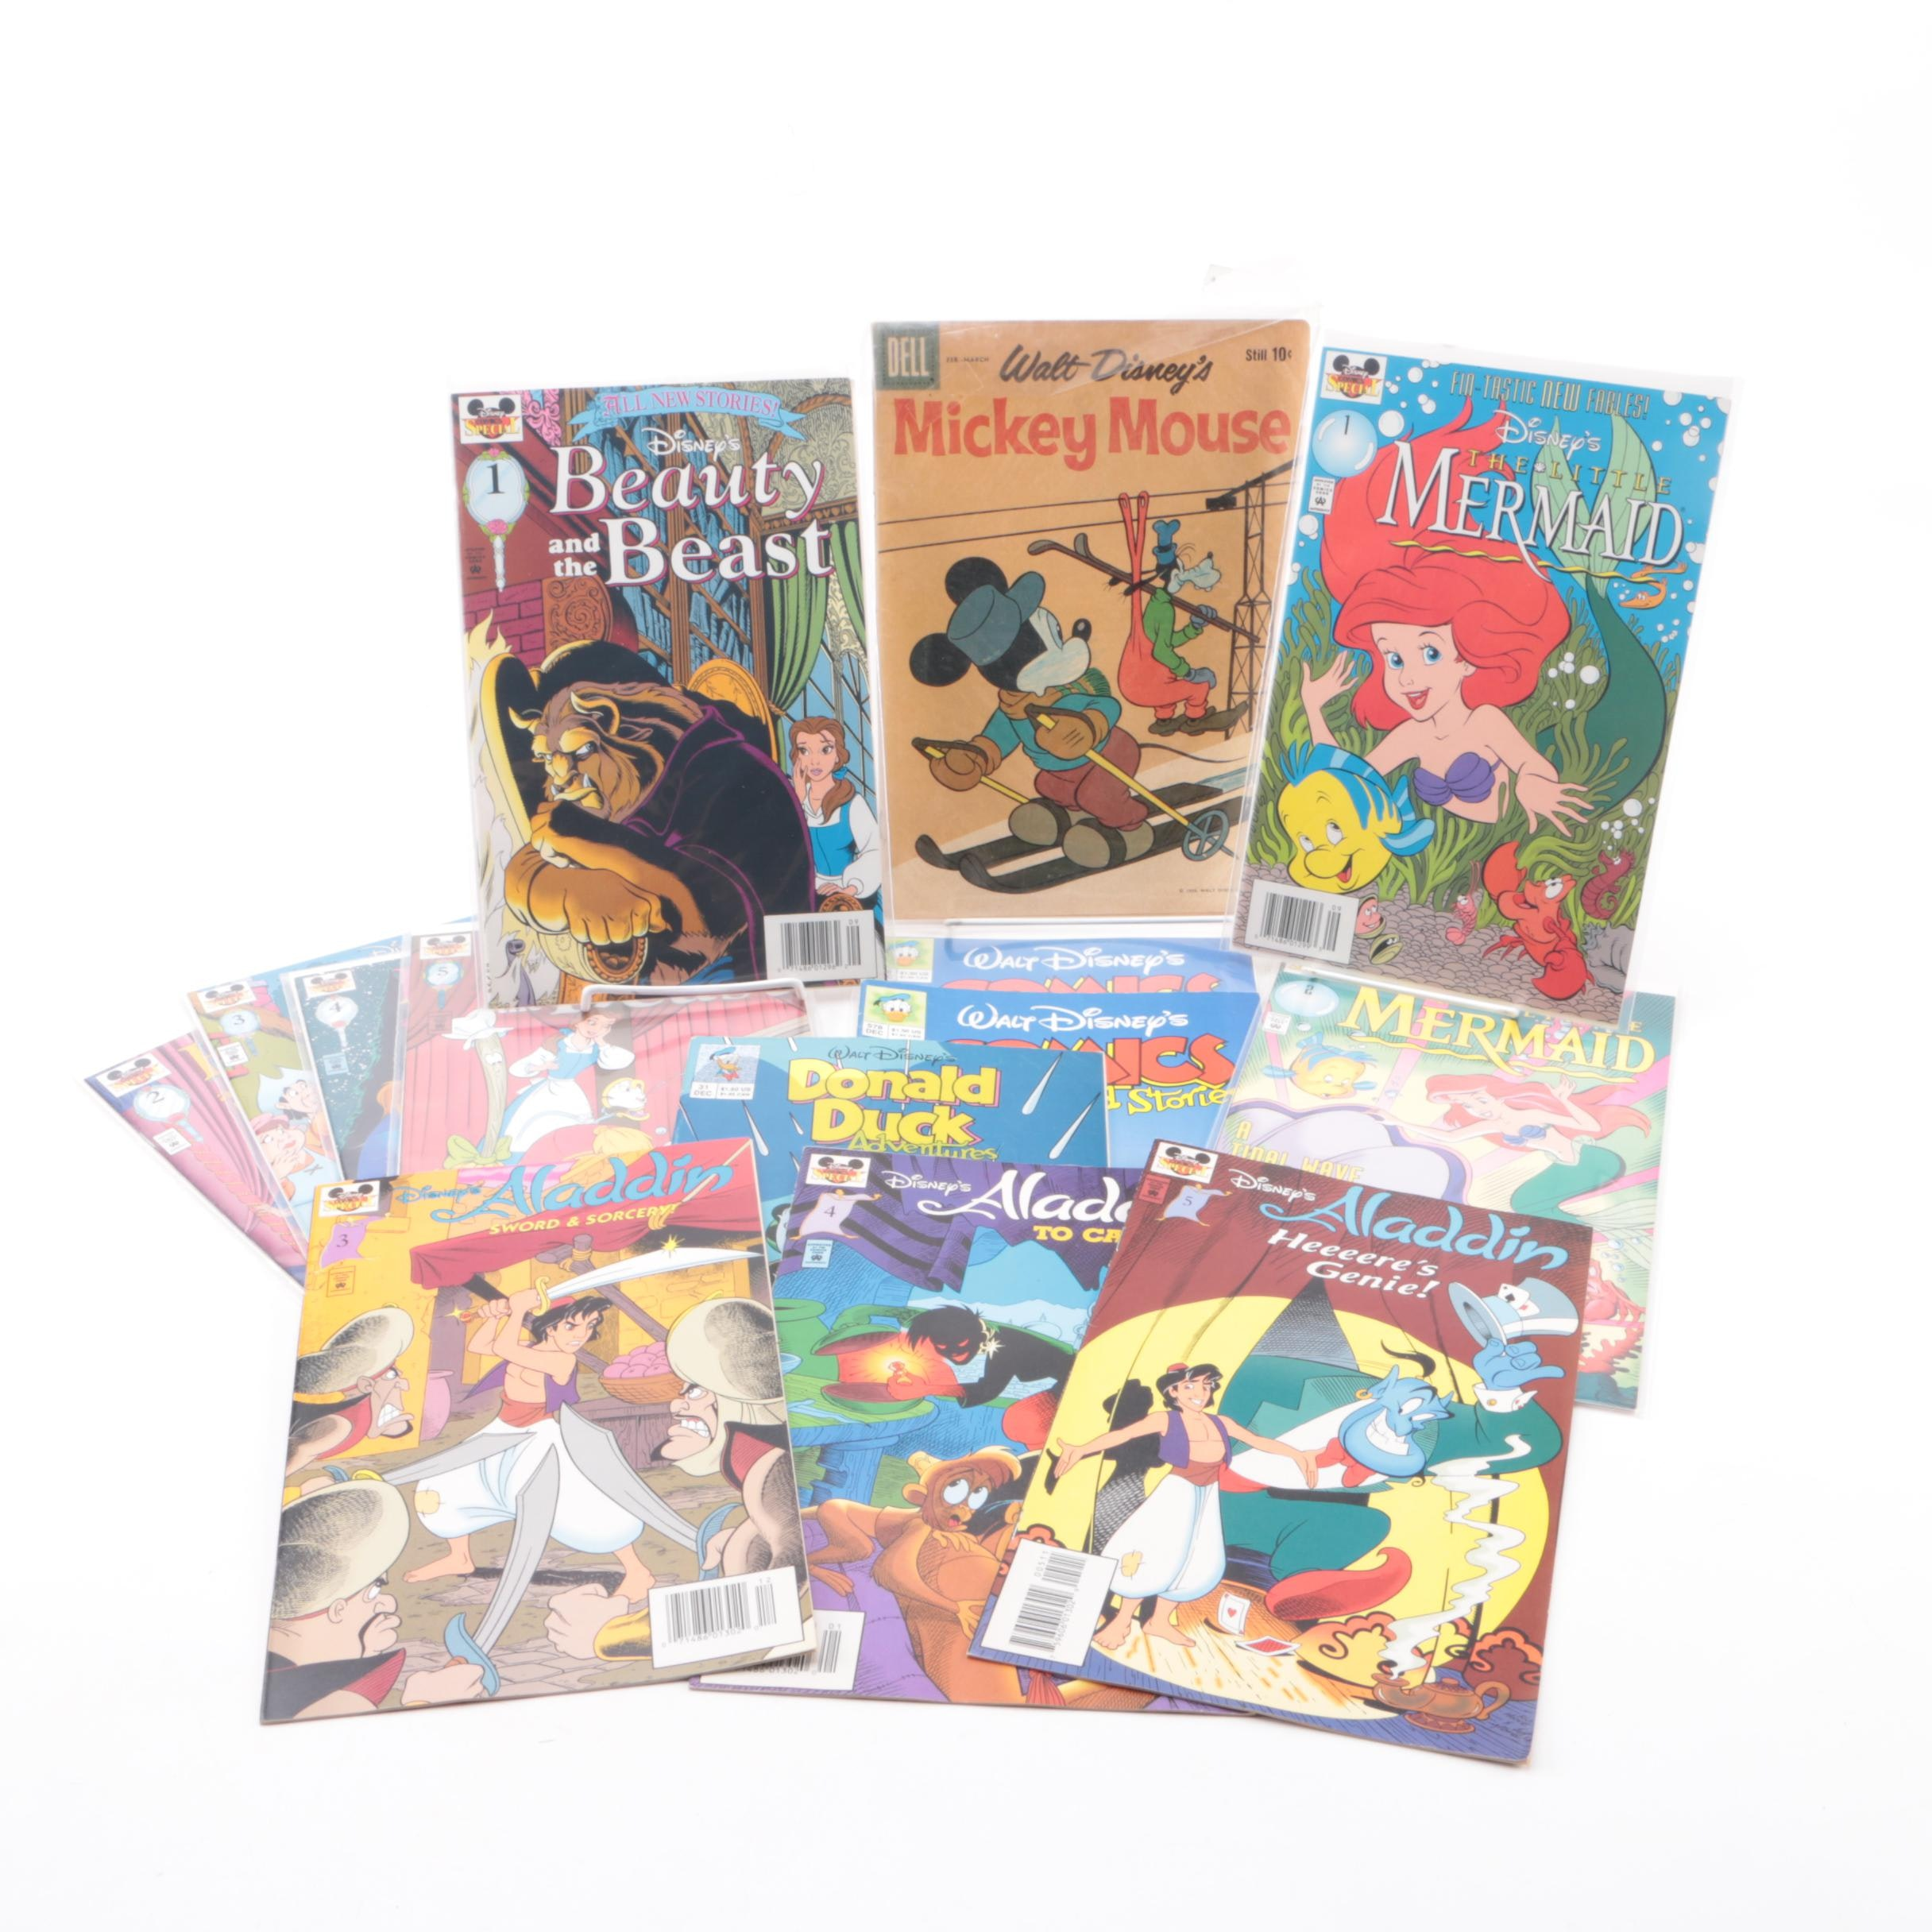 """Assorted Disney-Themed Comics Including """"Aladdin"""" and """"Mickey Mouse"""""""